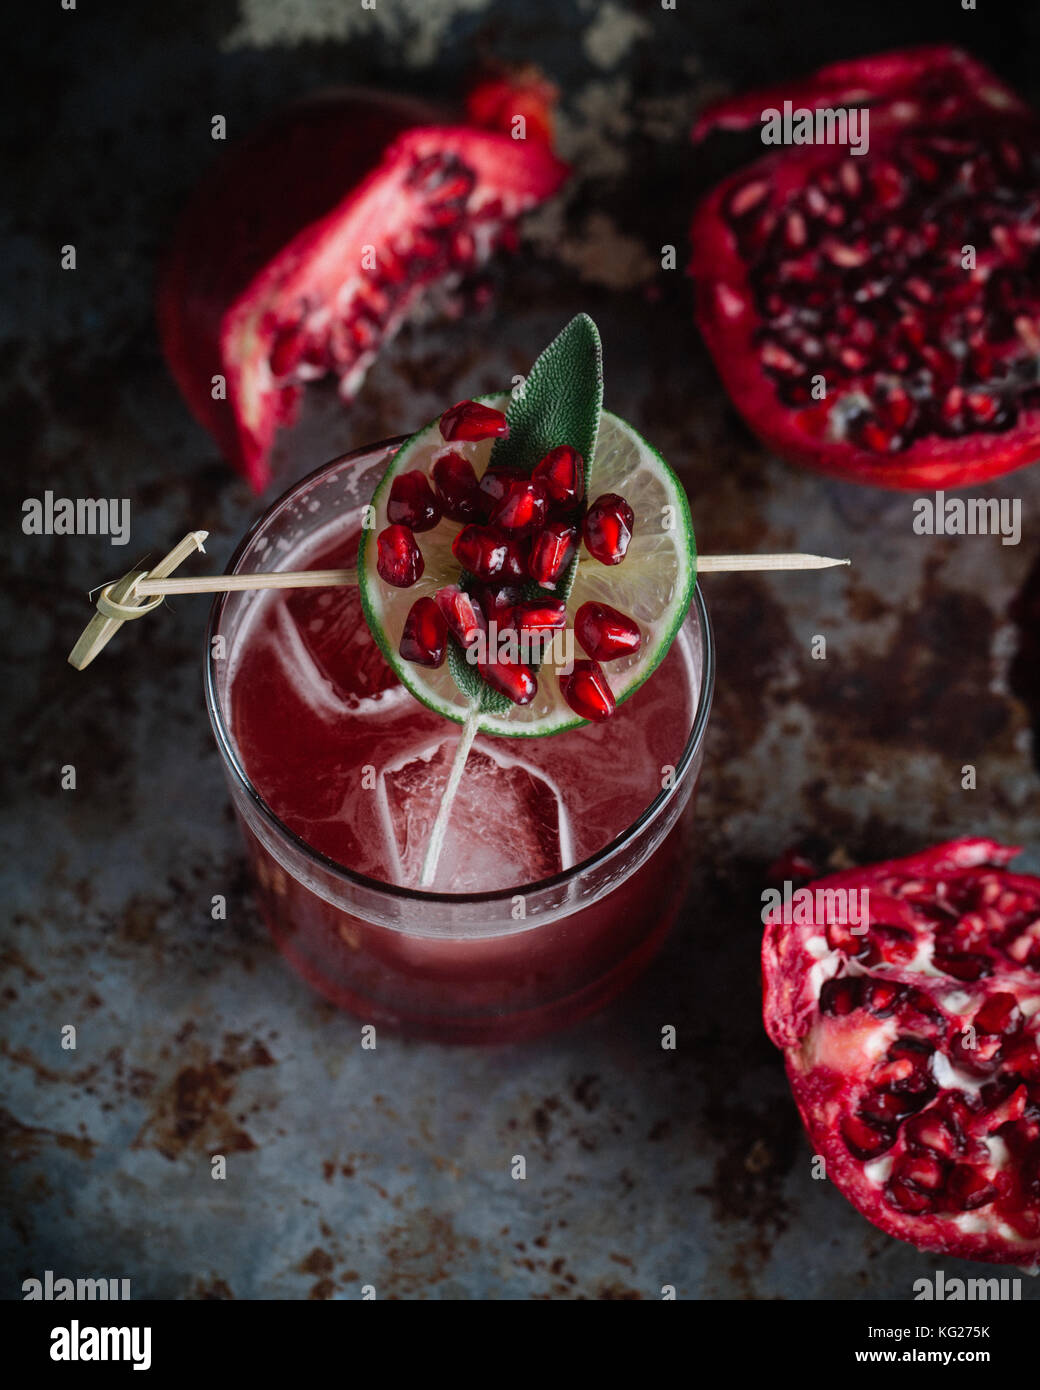 Alcoholic cocktail garnished with pomegranate seeds on dark moody background - Stock Image